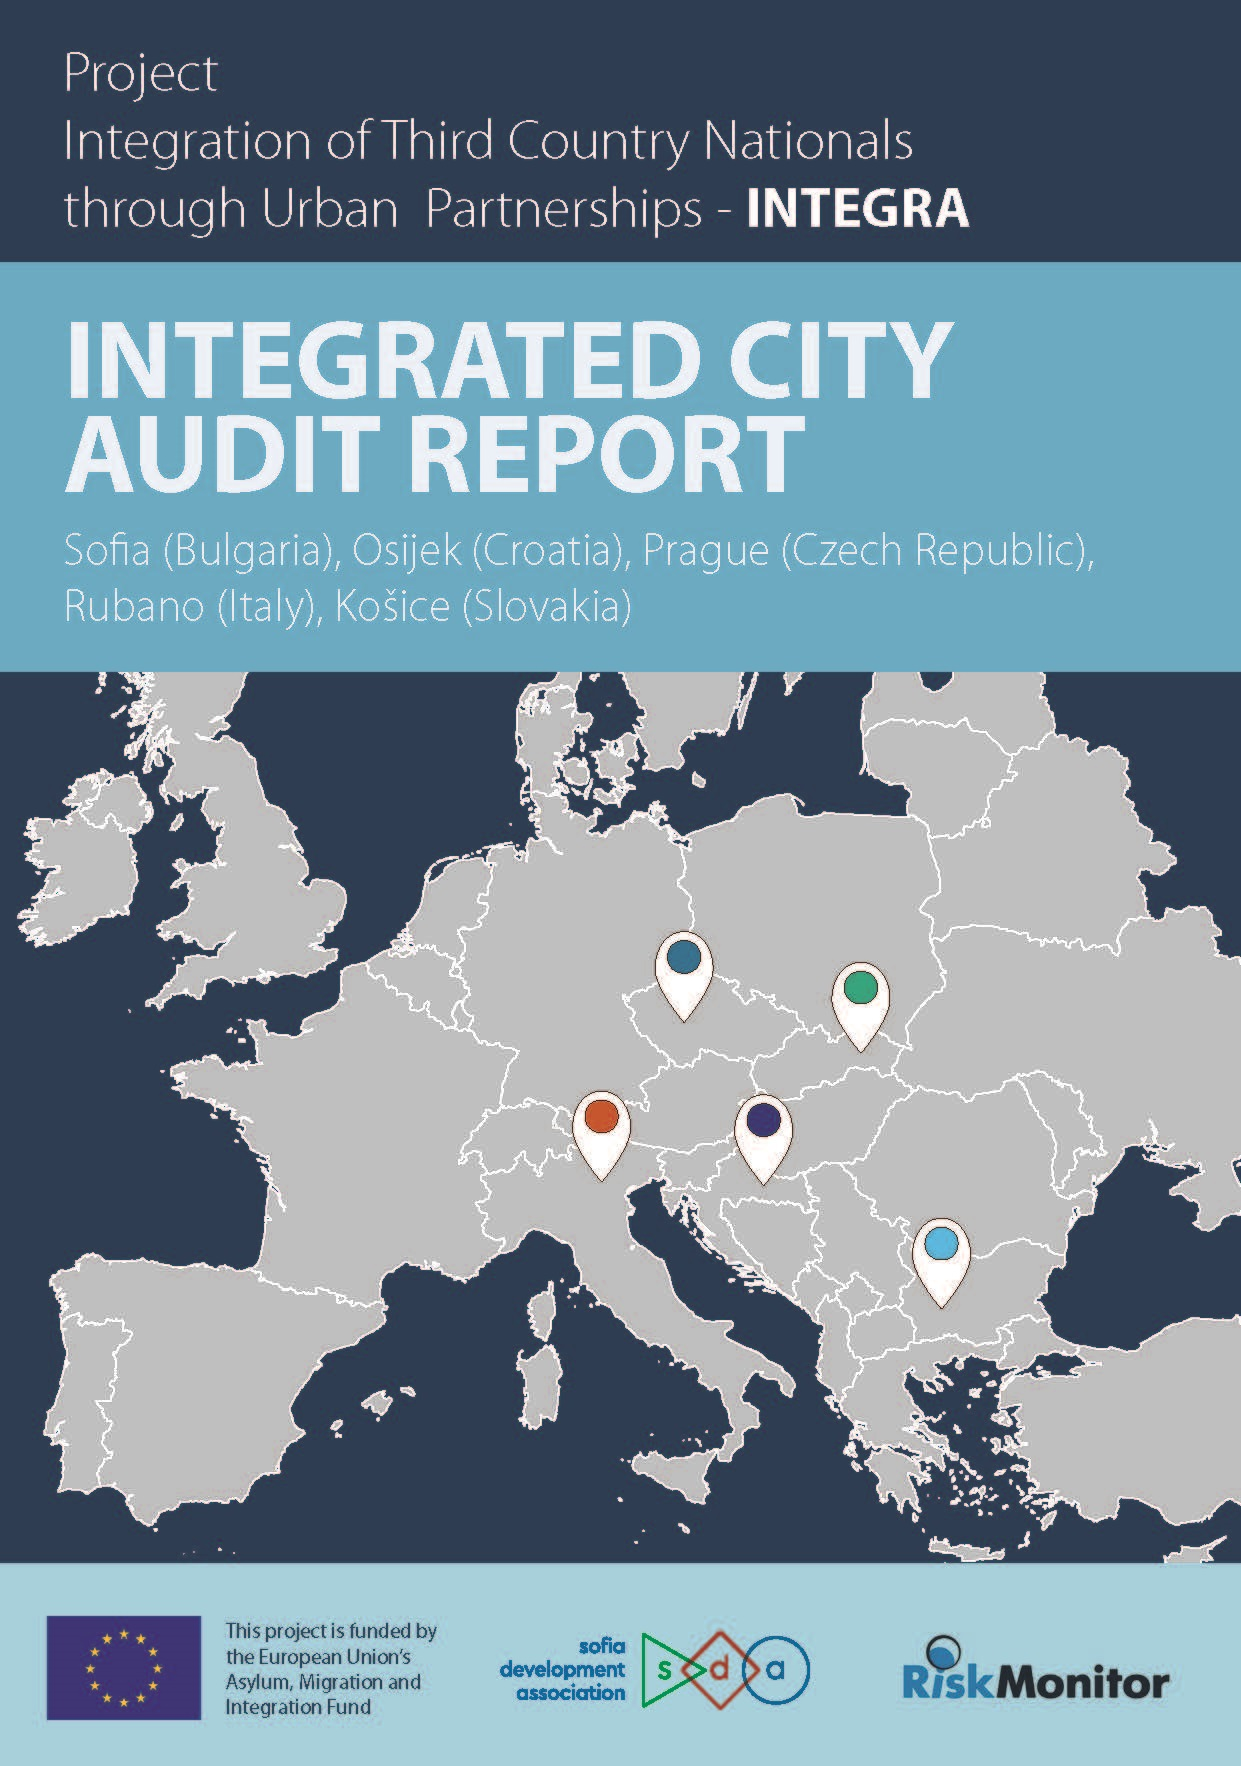 INTEGRATED CITY AUDIT REPORT